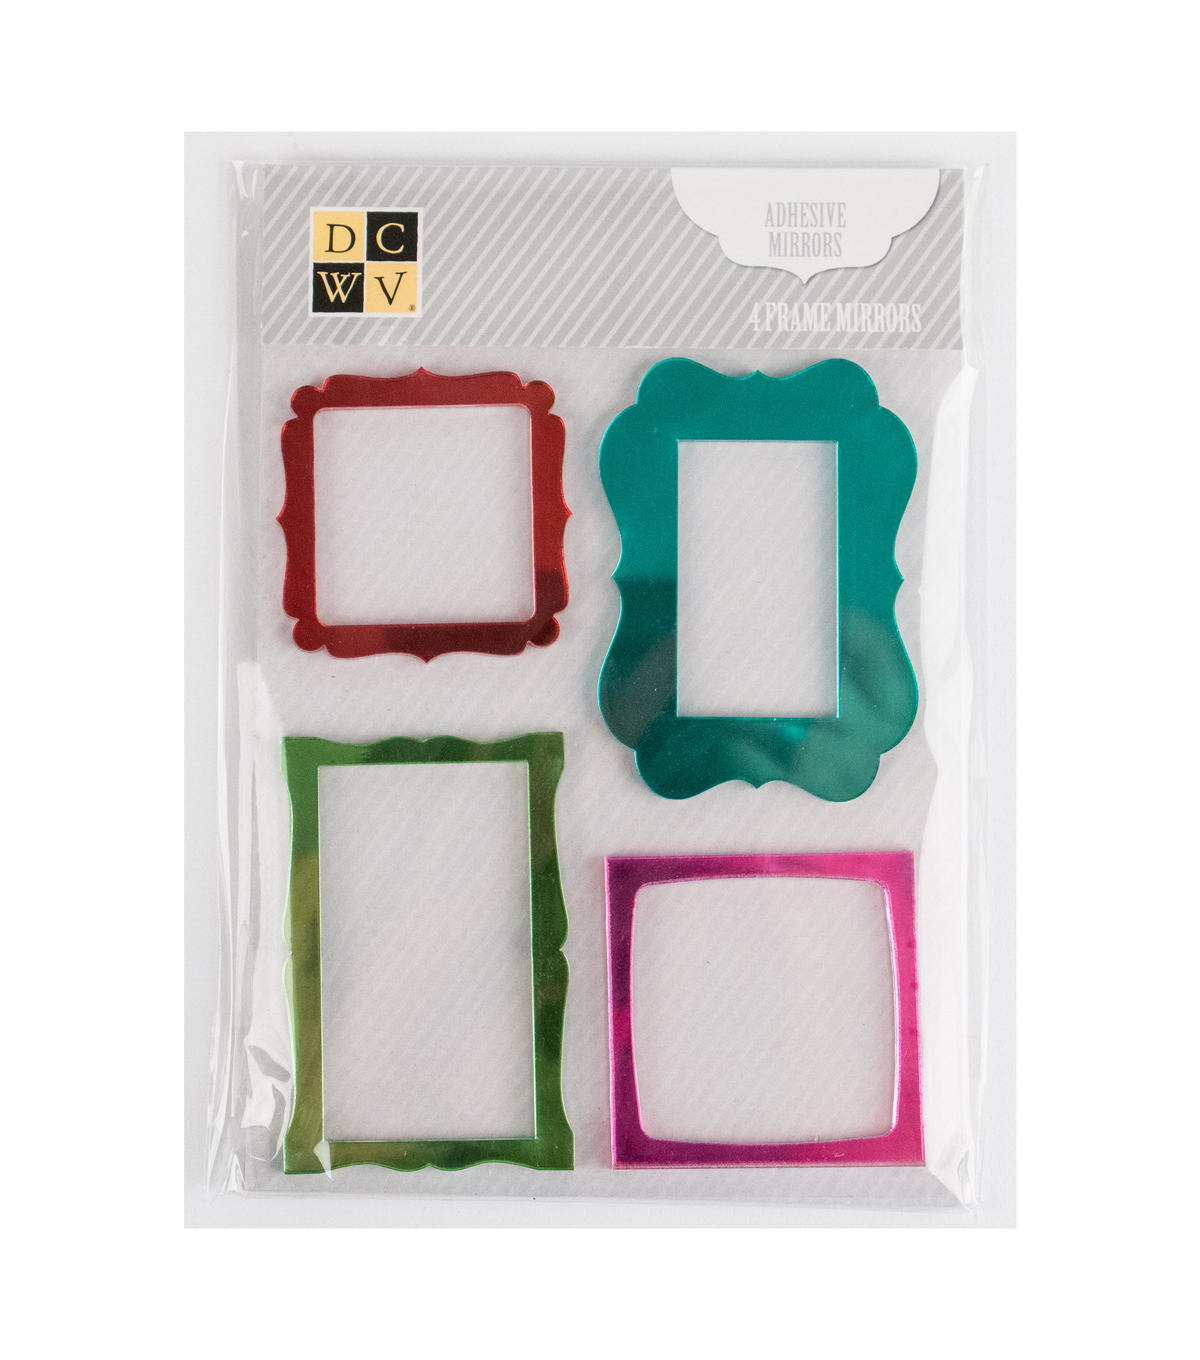 DCWV Mini Adhesive Mirrors-Colored Frames